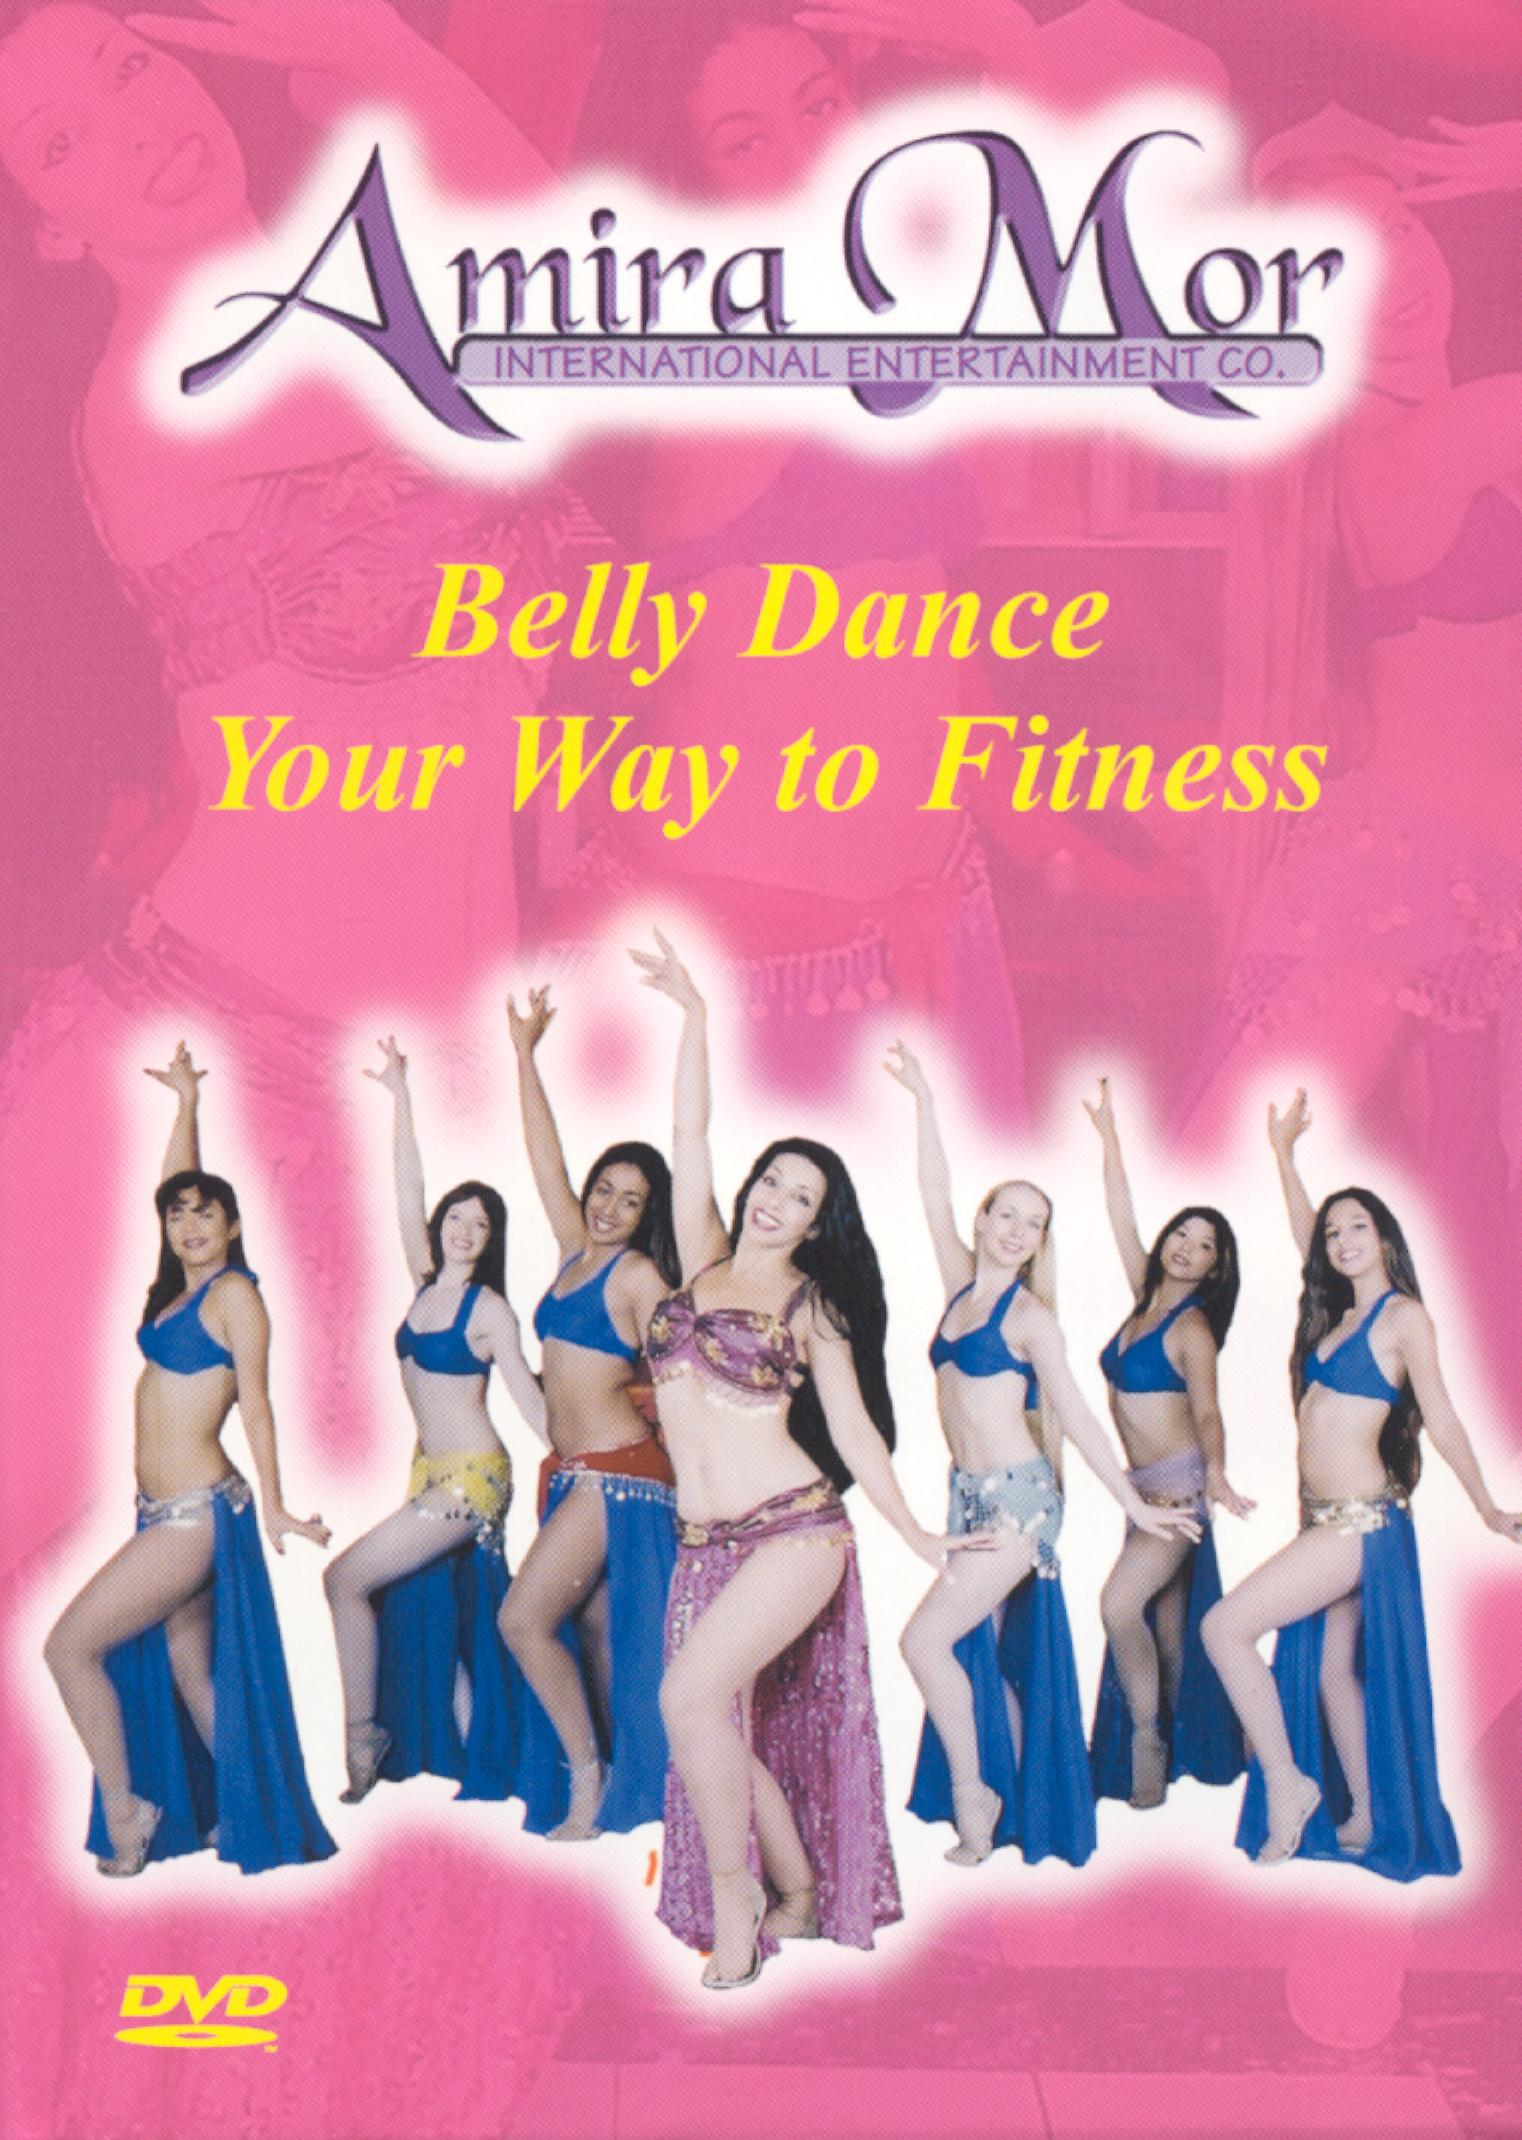 Amira Mor: Belly Dance Your Way to Fitness